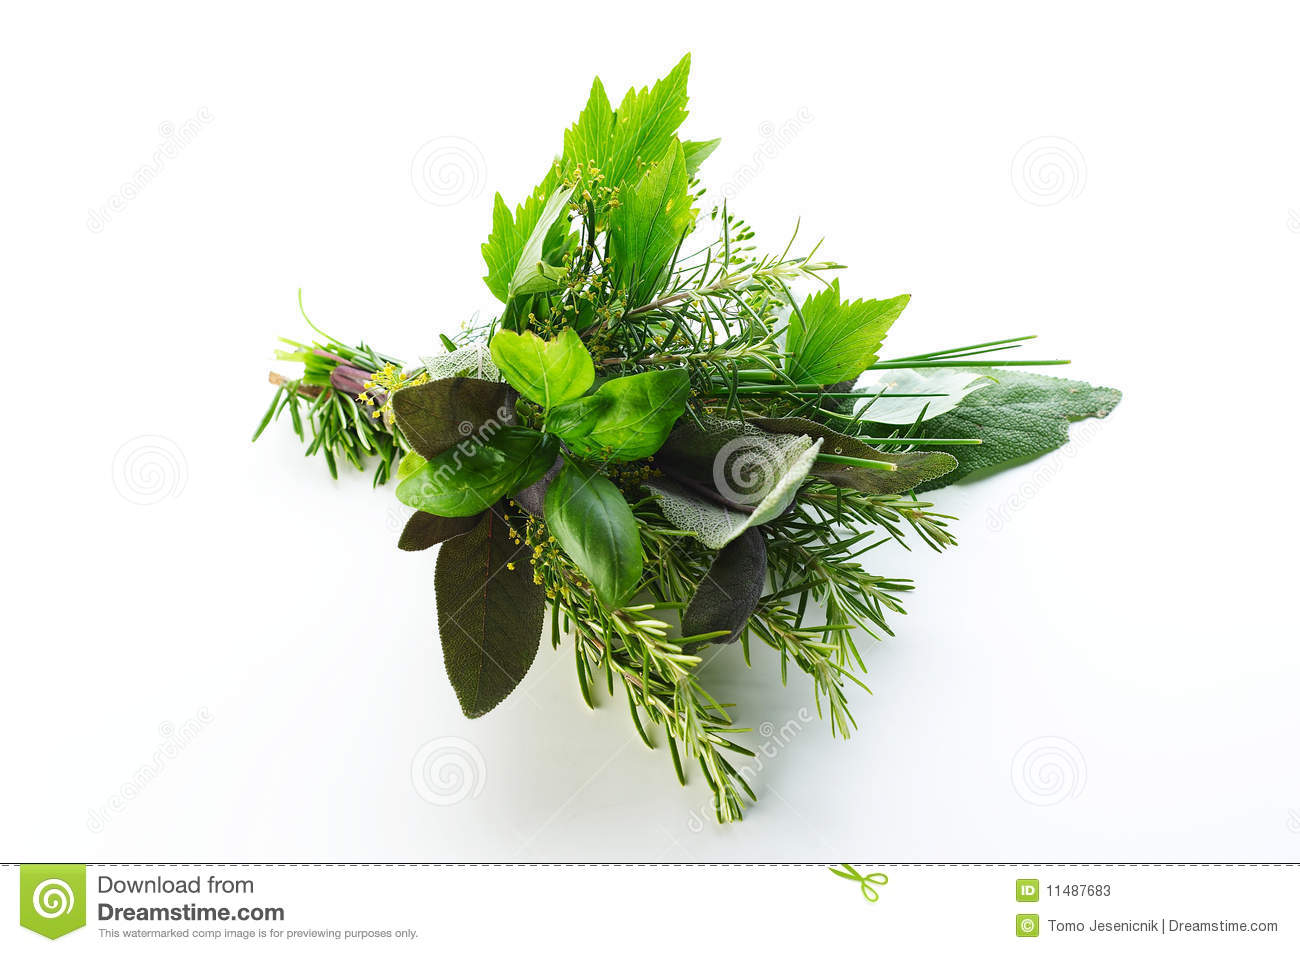 Different herbs royalty free stock image image 16265346 - Different Herbs Stock Photos Image 11487683 Wallpaper Gallery Image Gallery Different Herbs